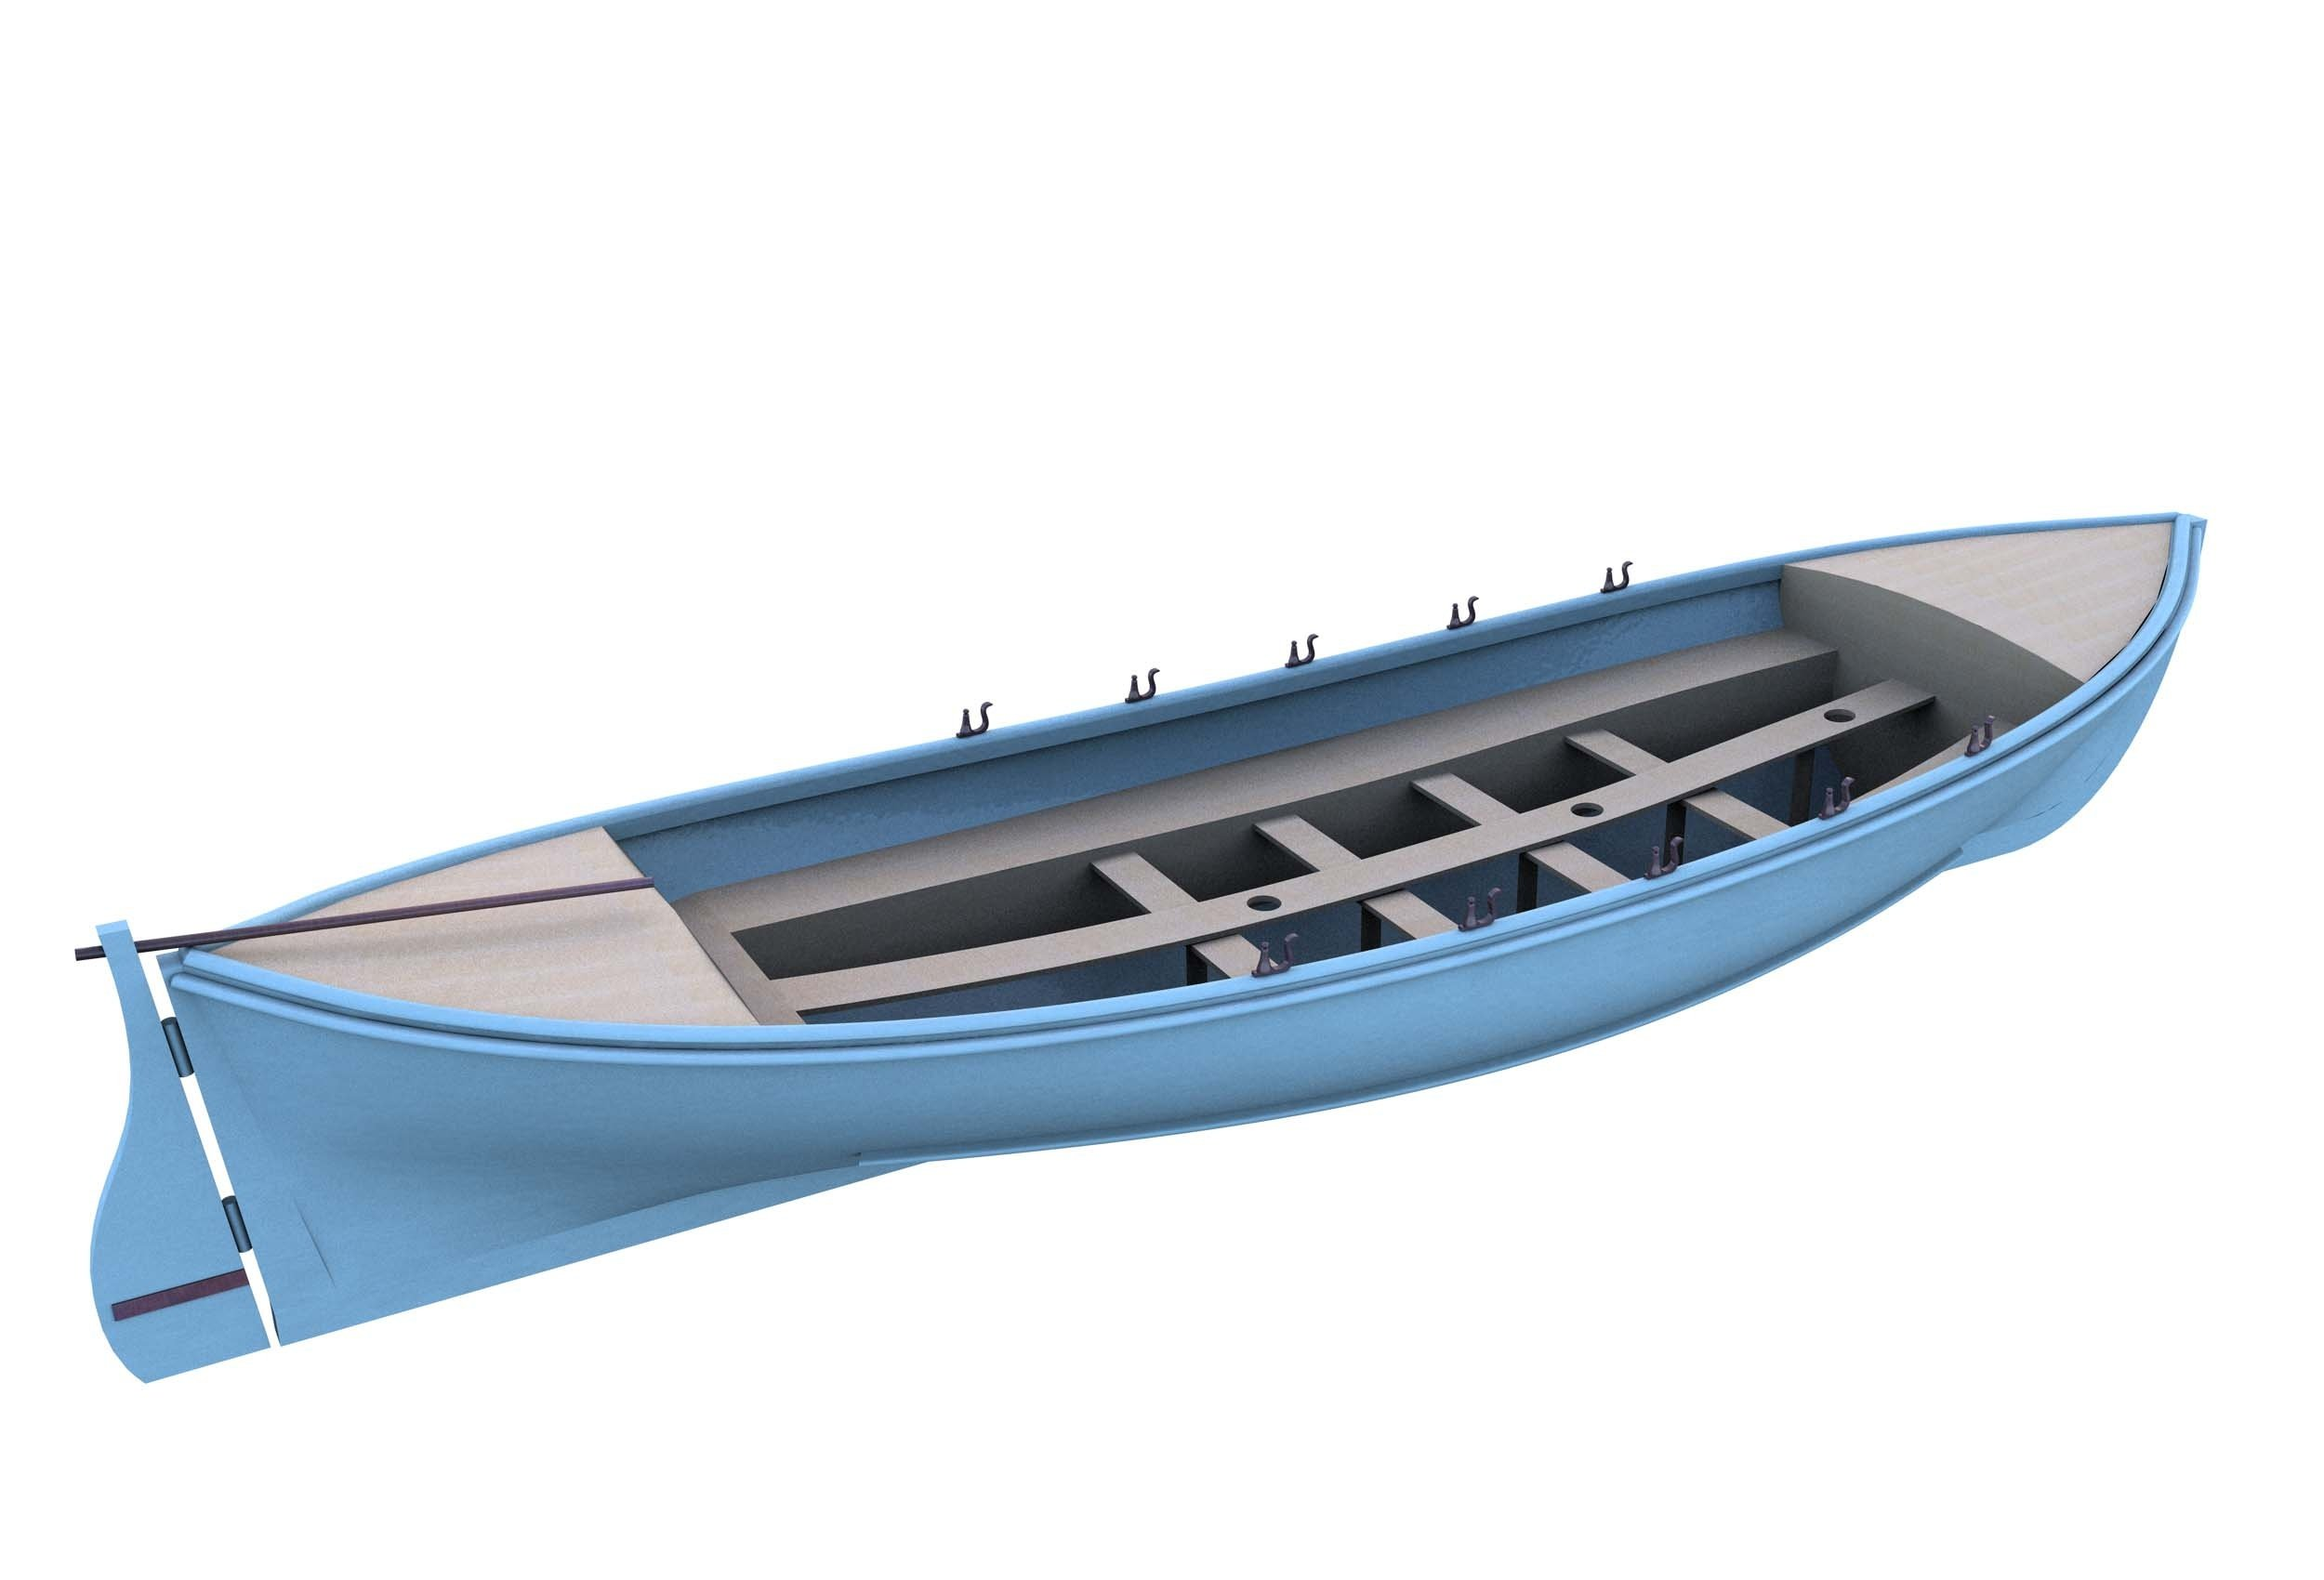 https://0901.nccdn.net/4_2/000/000/00d/f43/CK96-Individual-Small-Boat-Rescue-Cutter-Starboard-Side-2500x1700.jpg